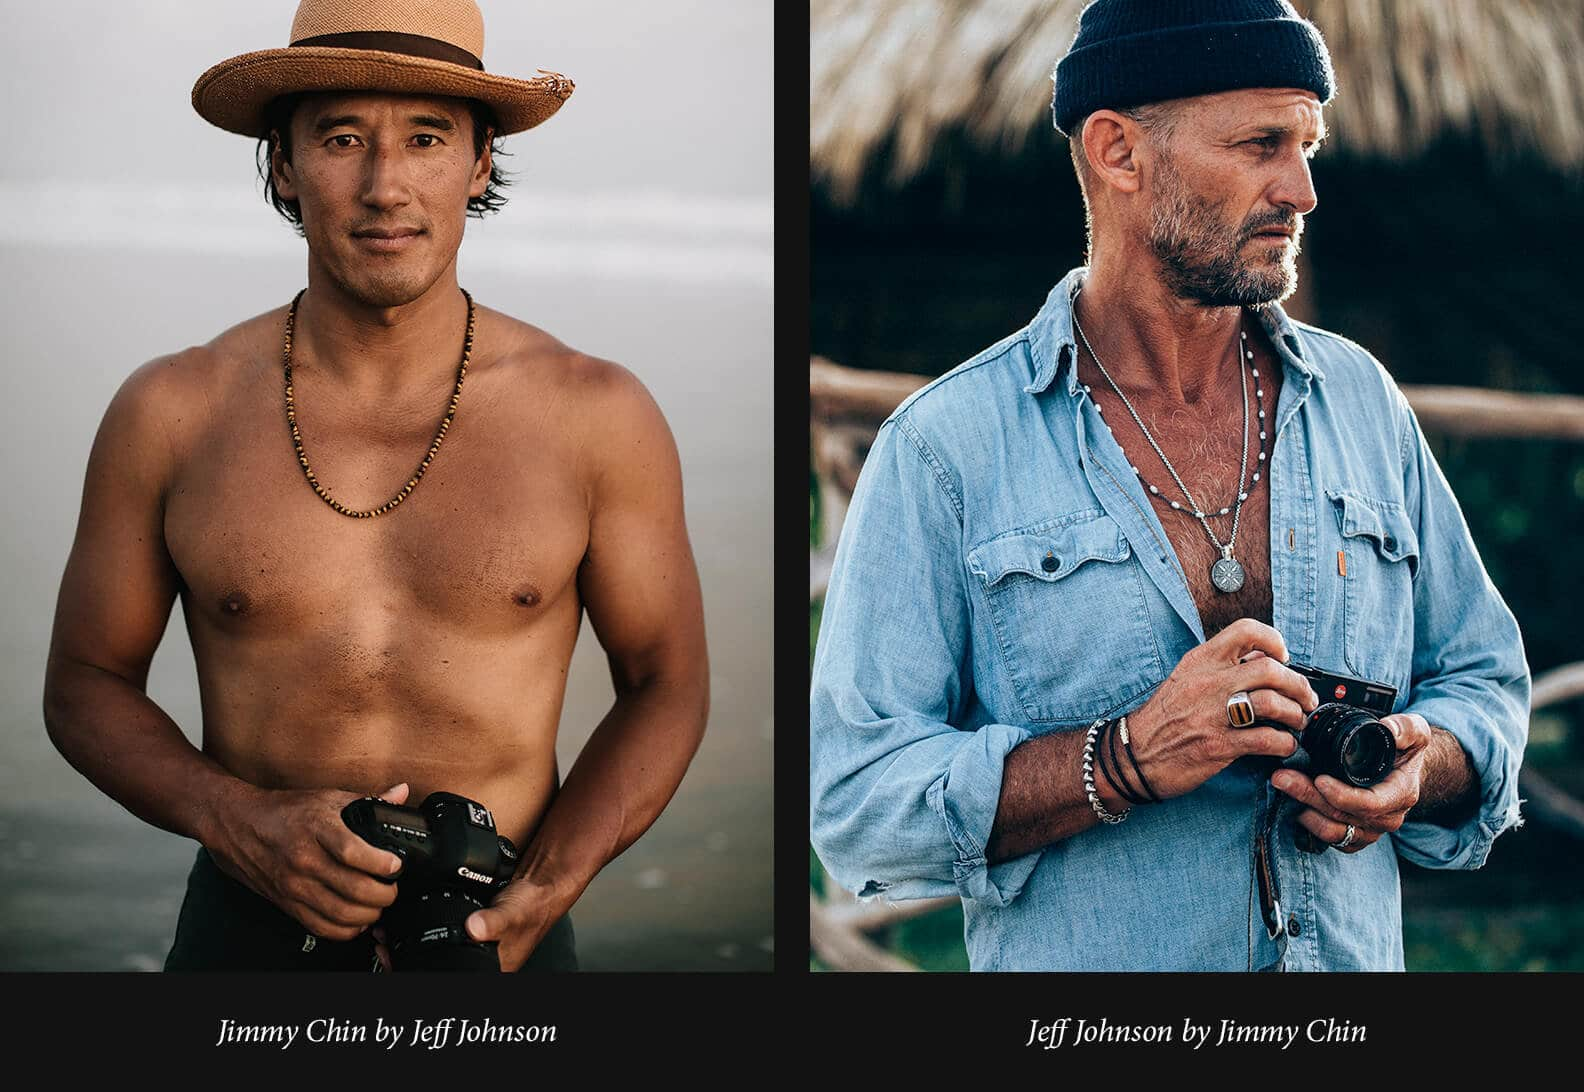 Two portraits of Jimmy Chin and Jeff Johnson are placed side by side. Jimmy is wearing a straw hat and a David Yurman beaded necklace while holding a camera on the beach. Jeff is wearing a chambray shirt, a blue watch cap and David Yurman sterling silver jewelry including a beaded necklace, a Shipwreck pendant on a chain, a Chevron leather bracelet and an Exotic Stone signet ring while holding a camera in front of a straw hut.